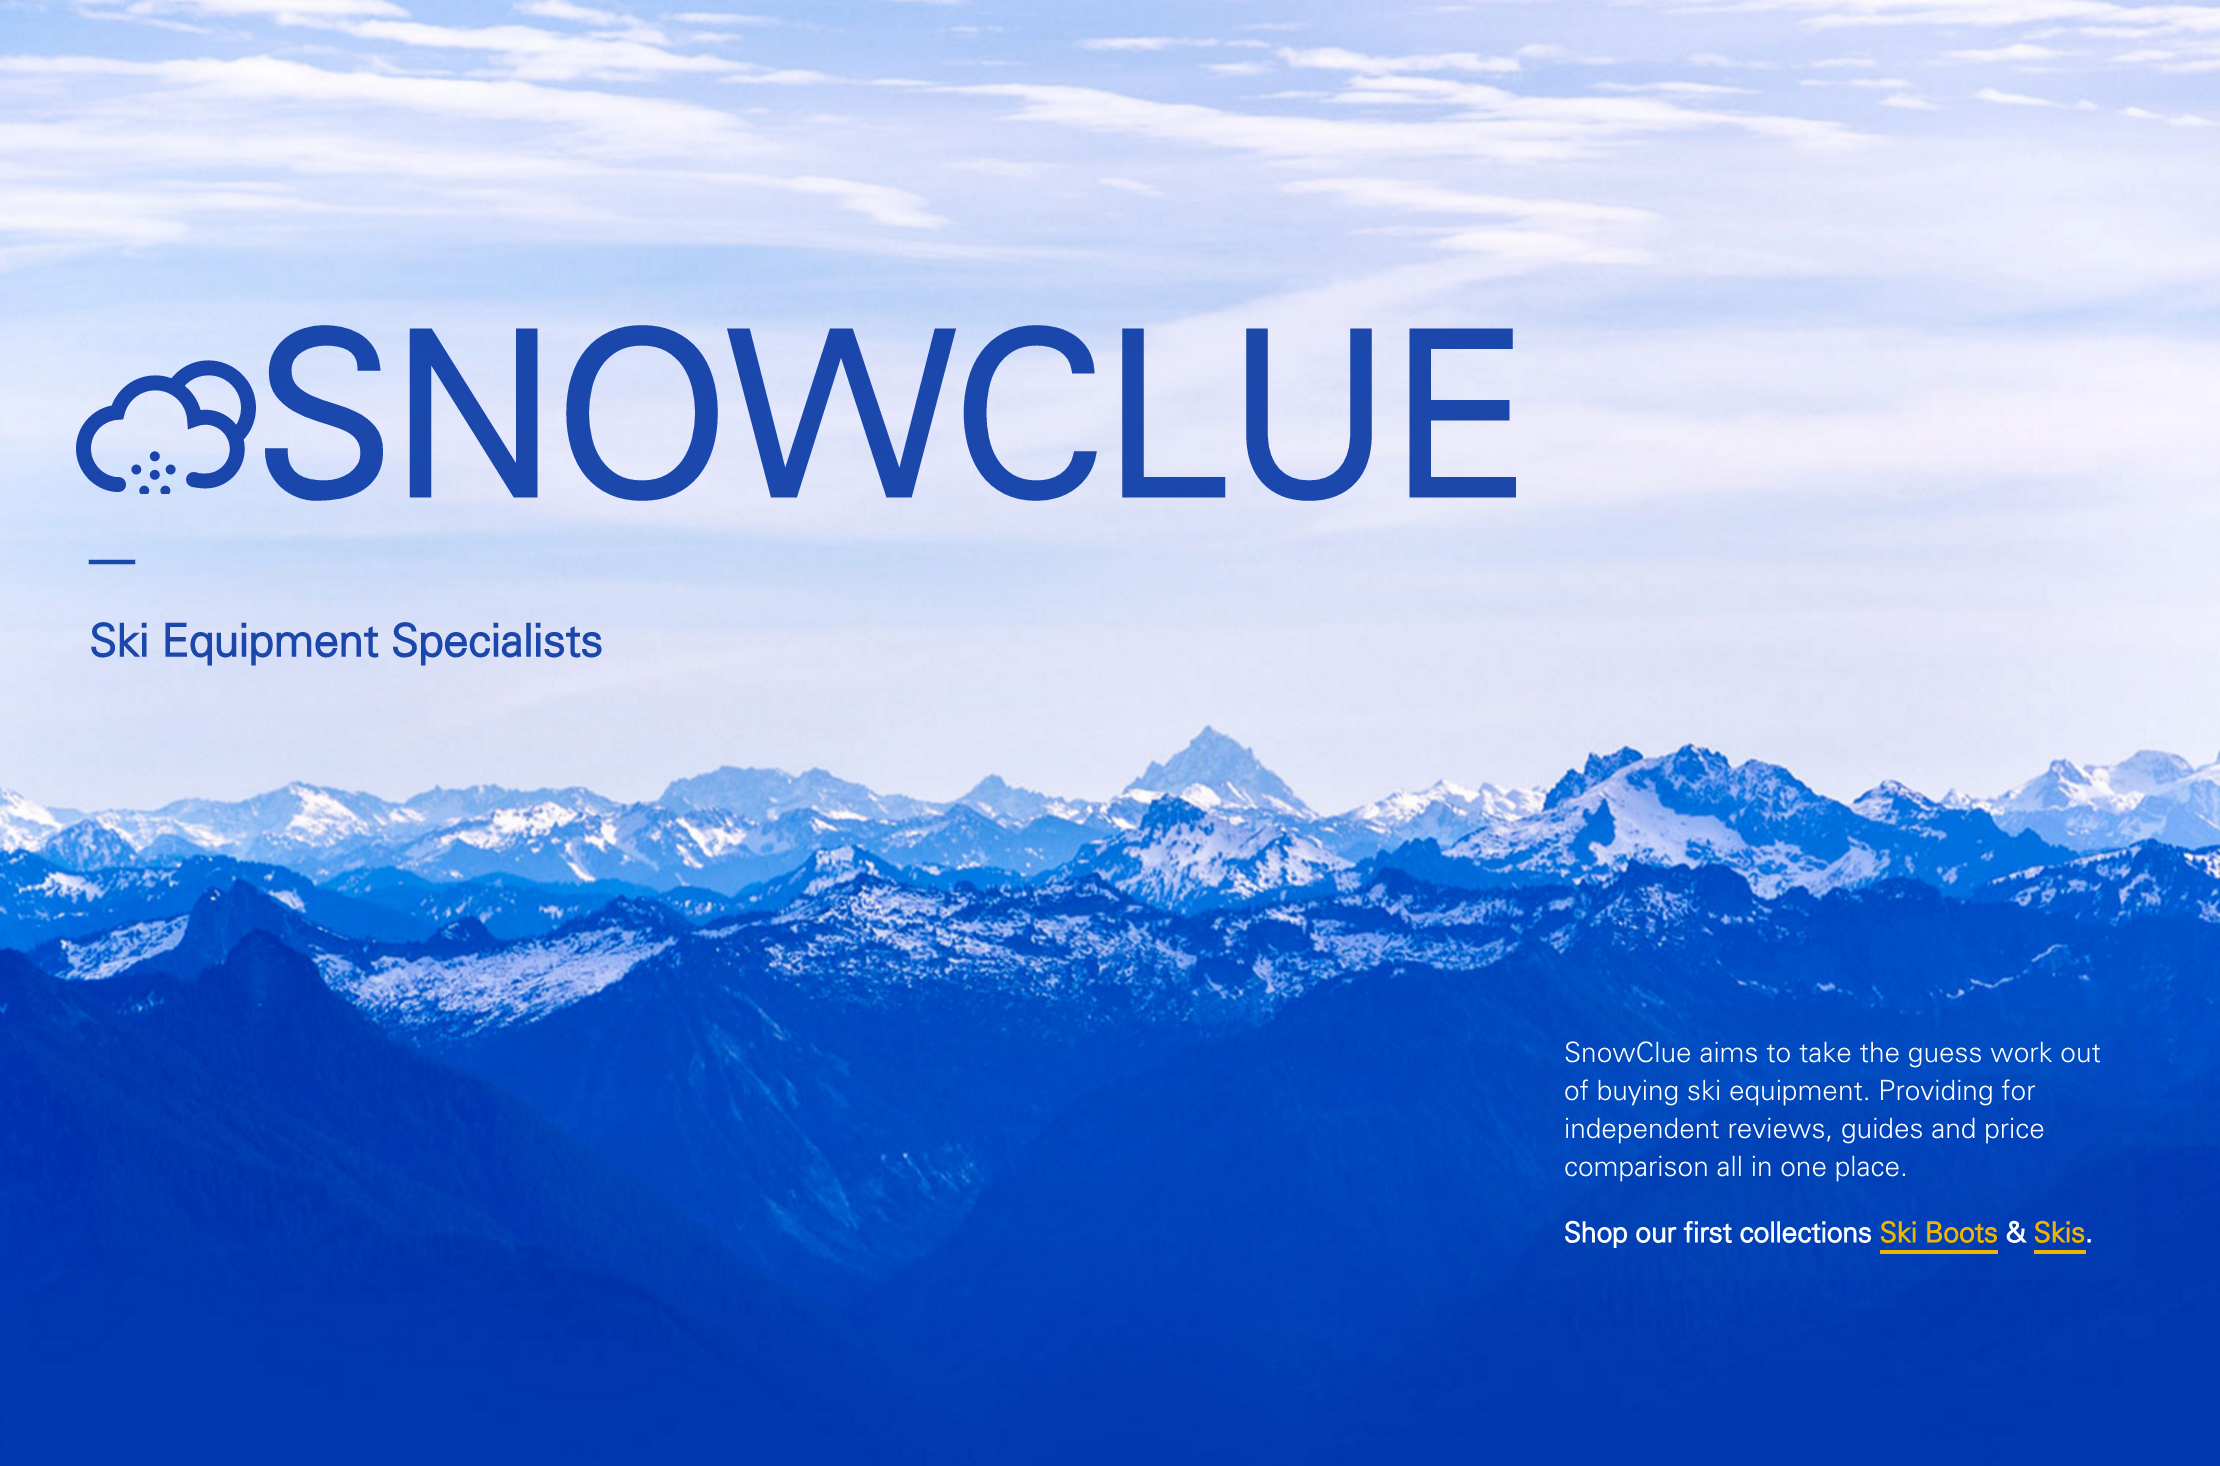 A screenshot of Snowclue.com